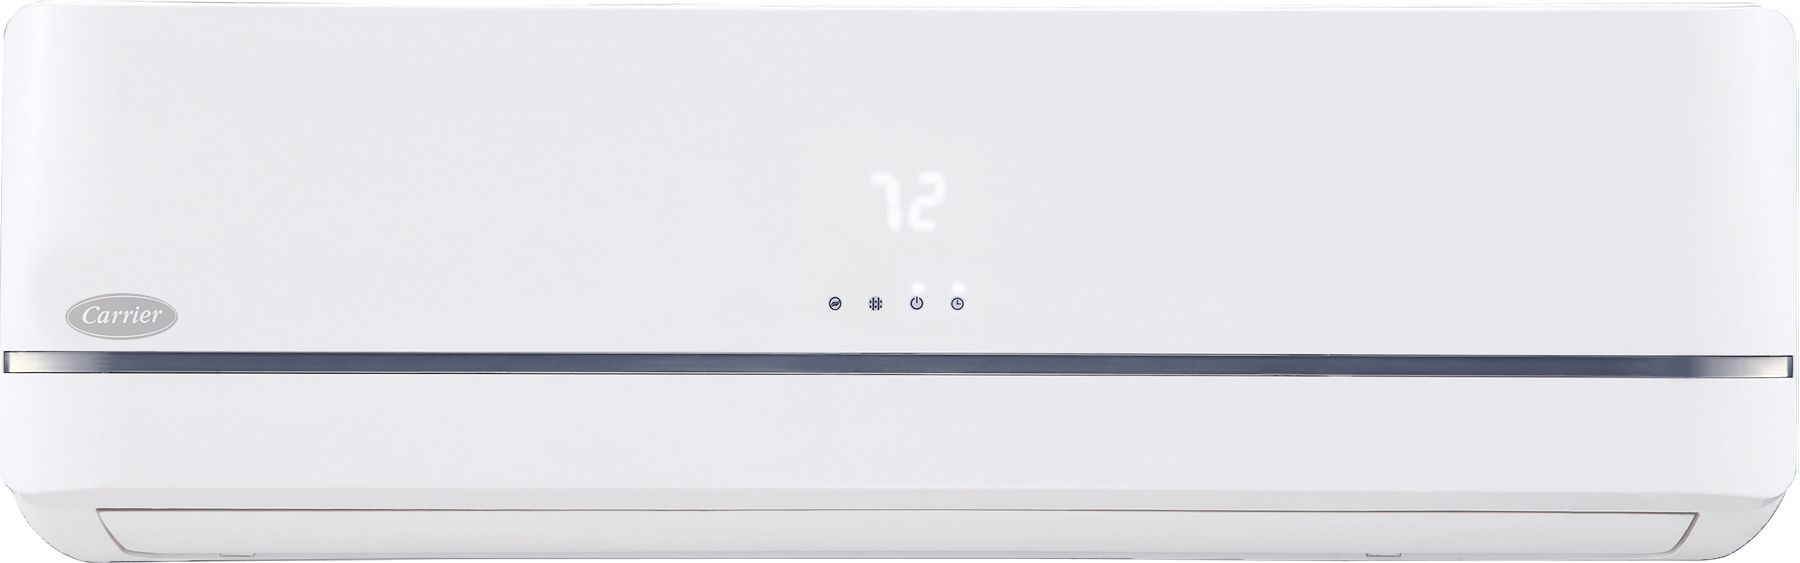 Wall Mounted Air Conditioner Multi Service Individual Inverter Performance 38 40gxm Ca Wall Mounted Air Conditioner Repair And Maintenance Ductless